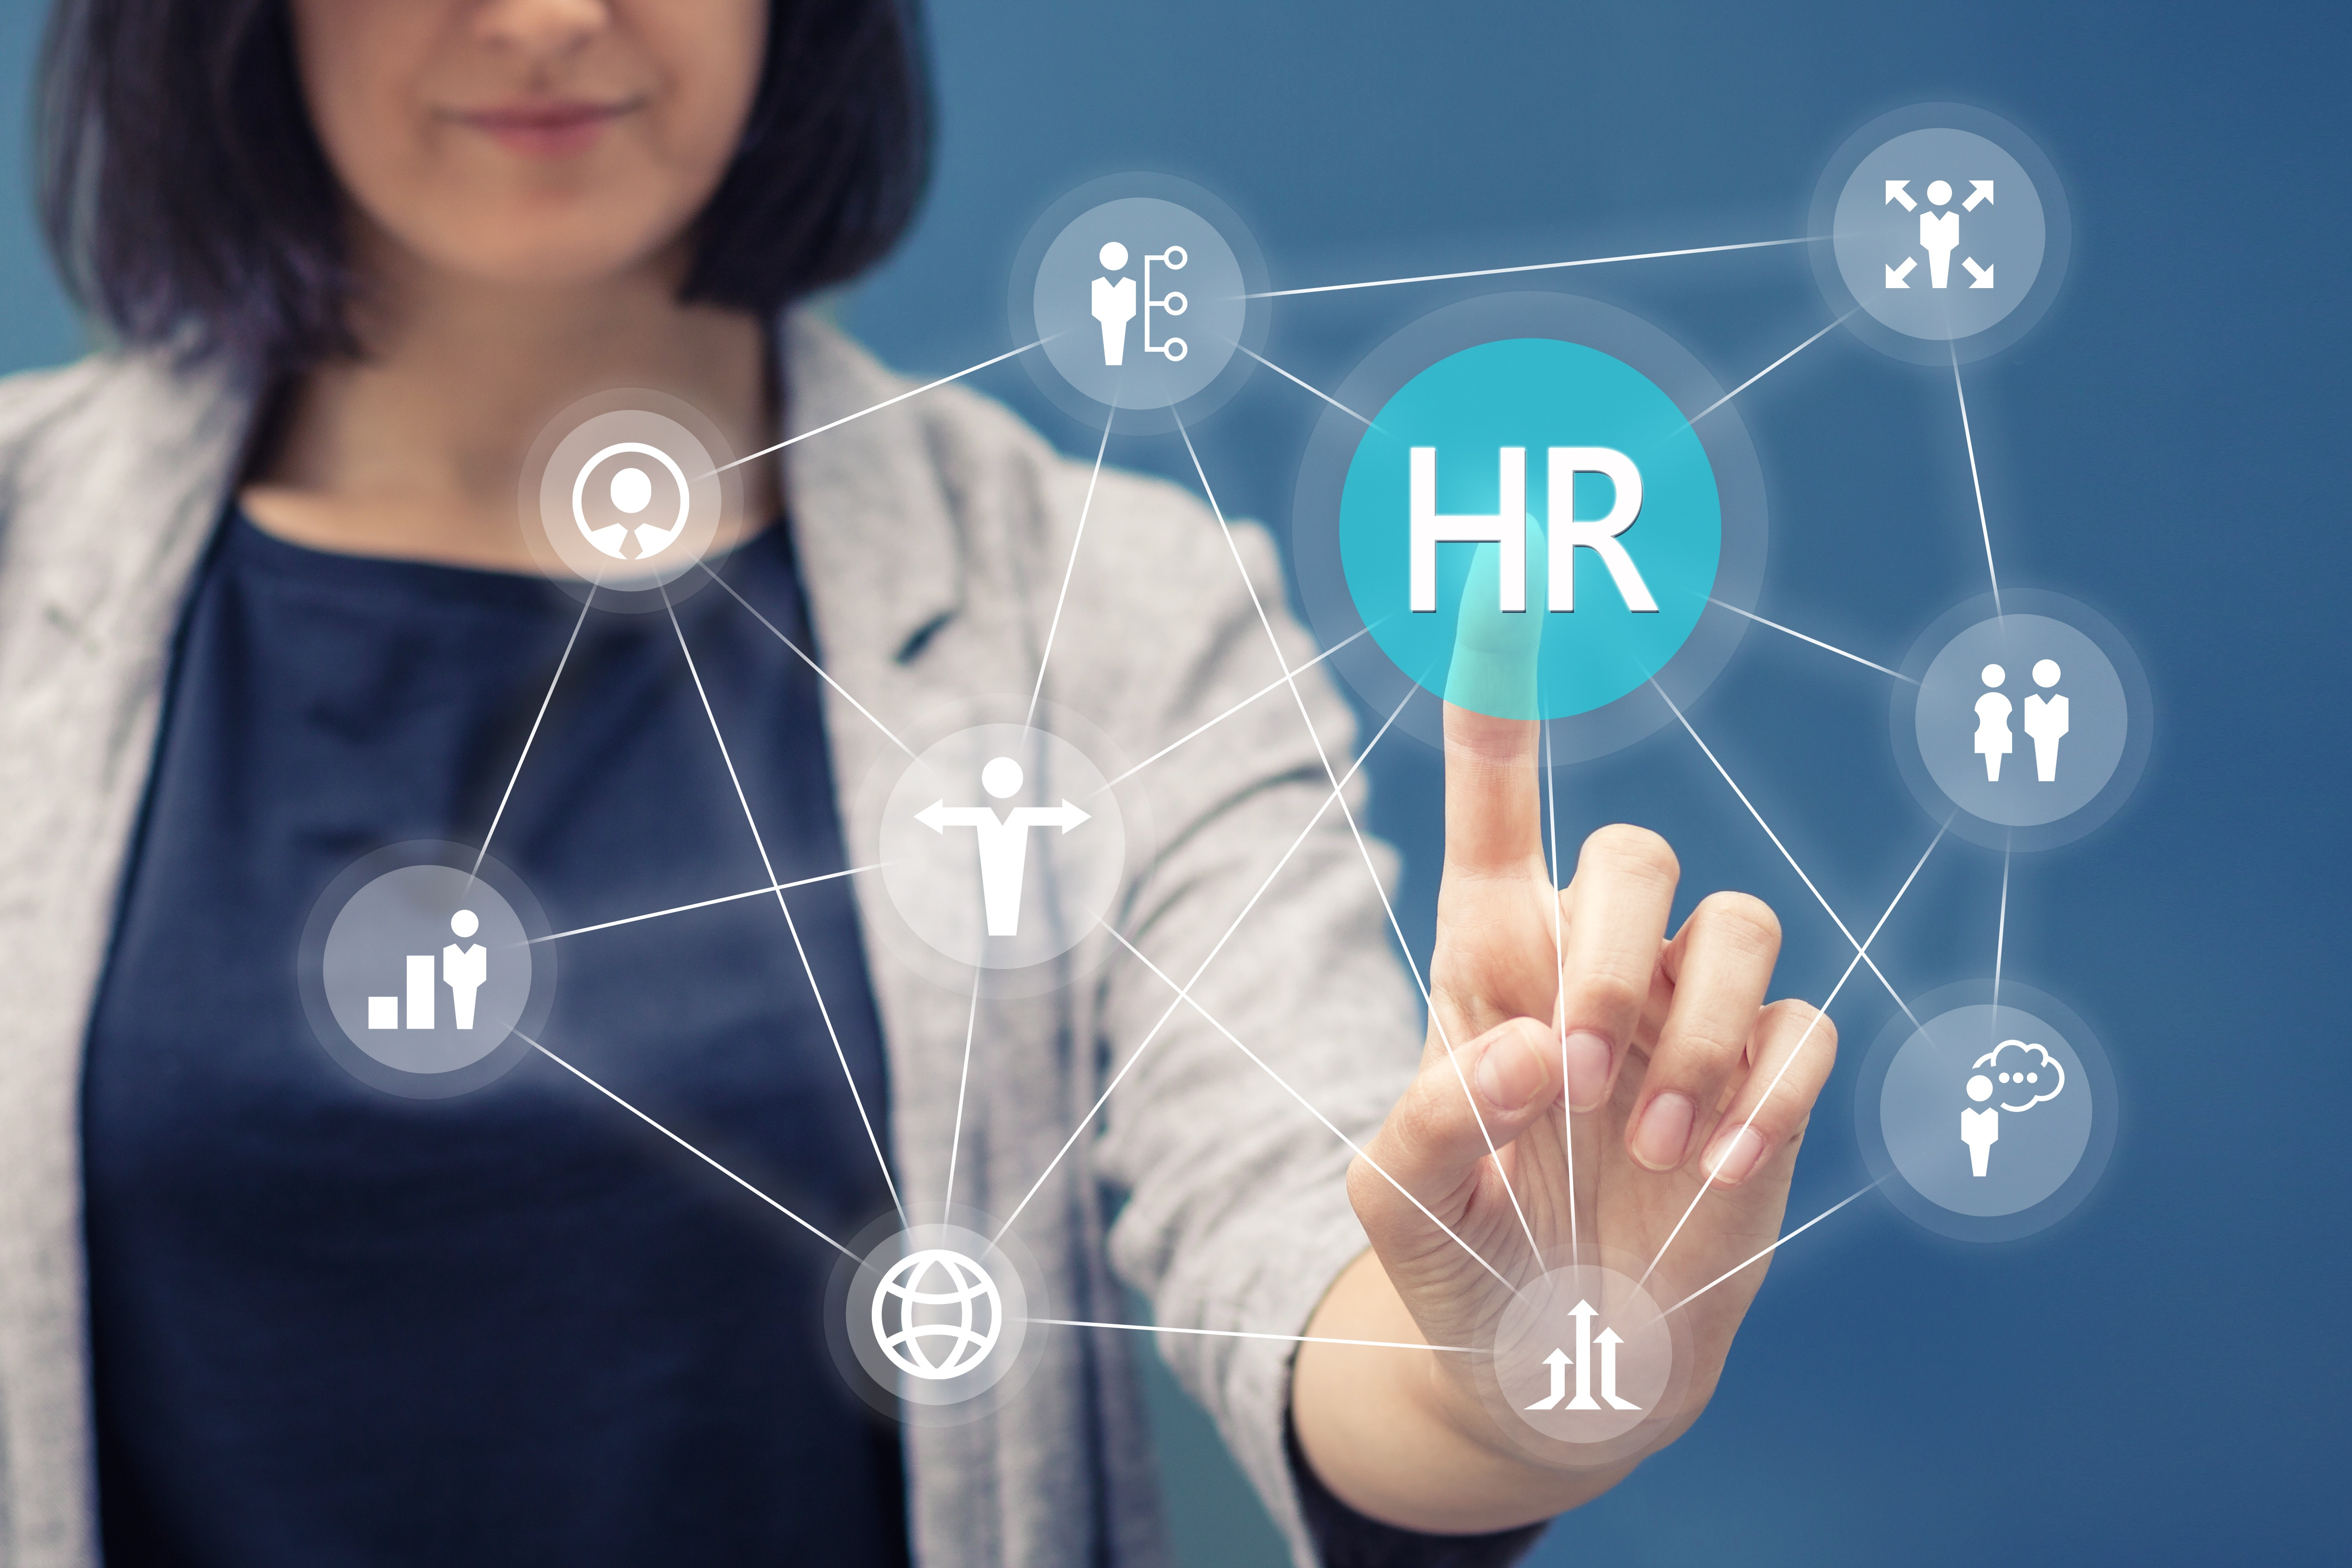 How to find an HRIS